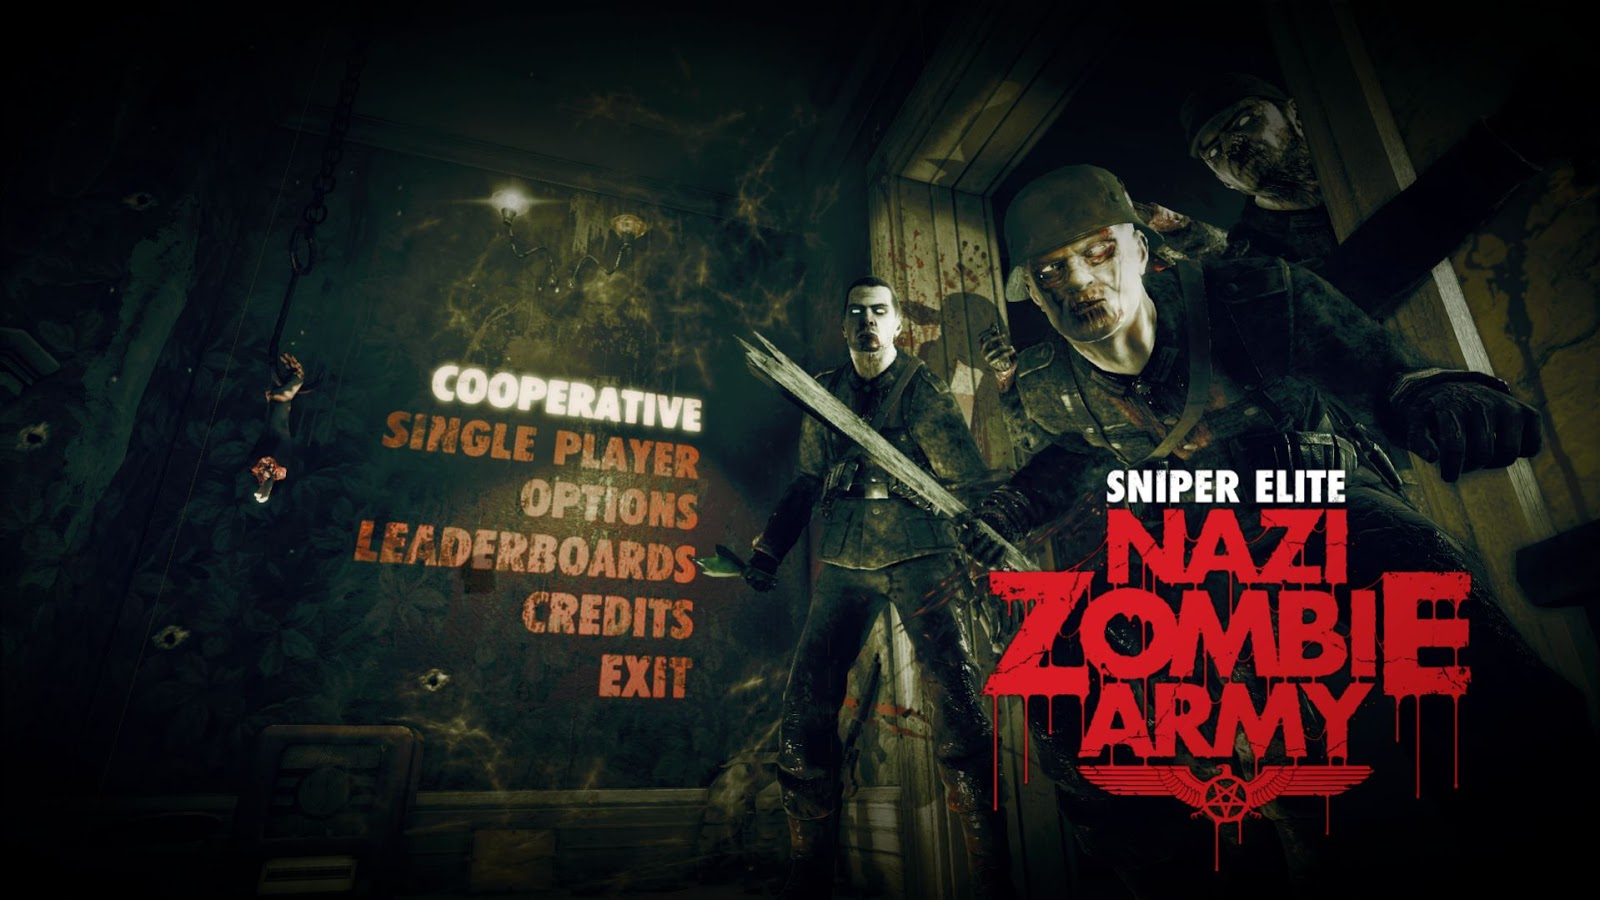 Nazi zombies casino download - Poker rooms macomb